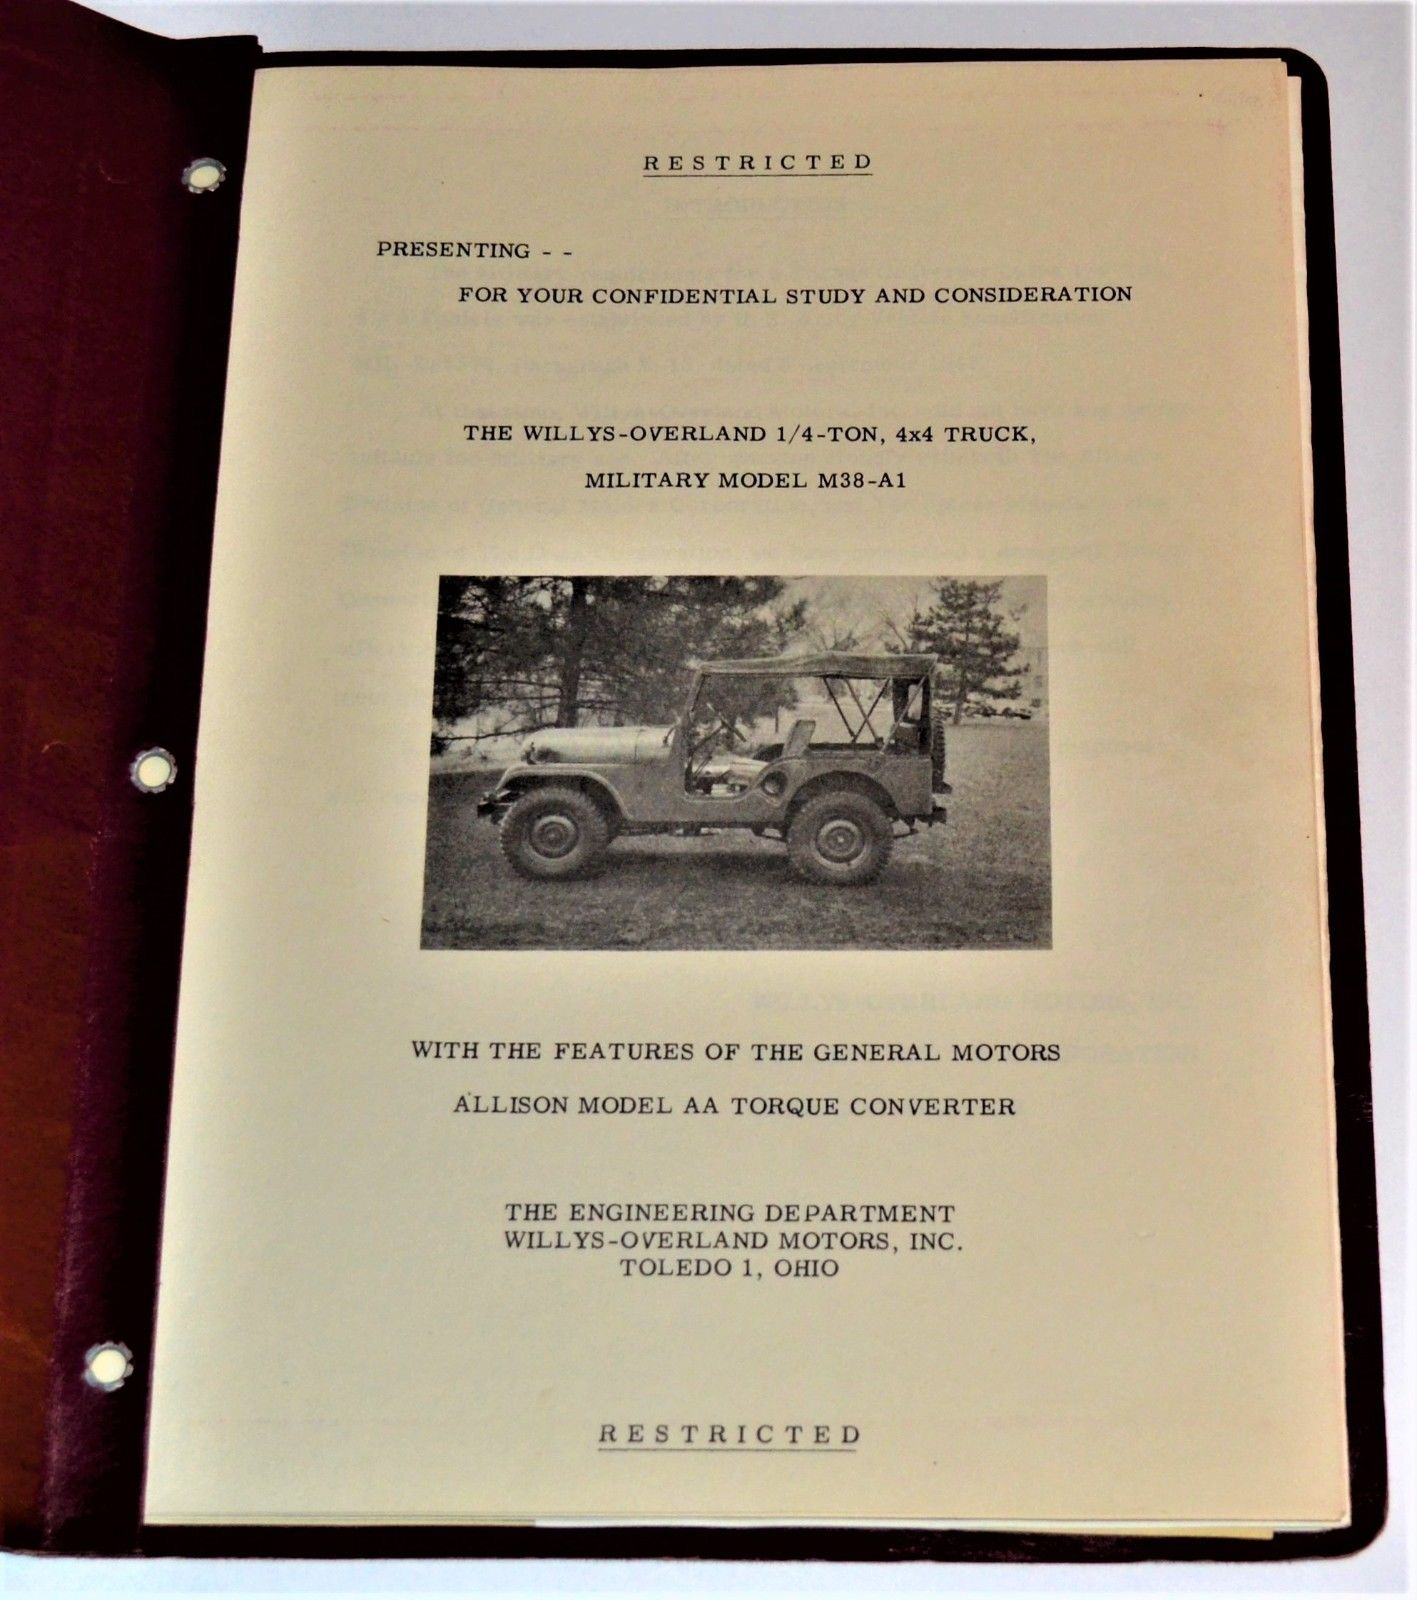 1952-m38a1-transmission-document3